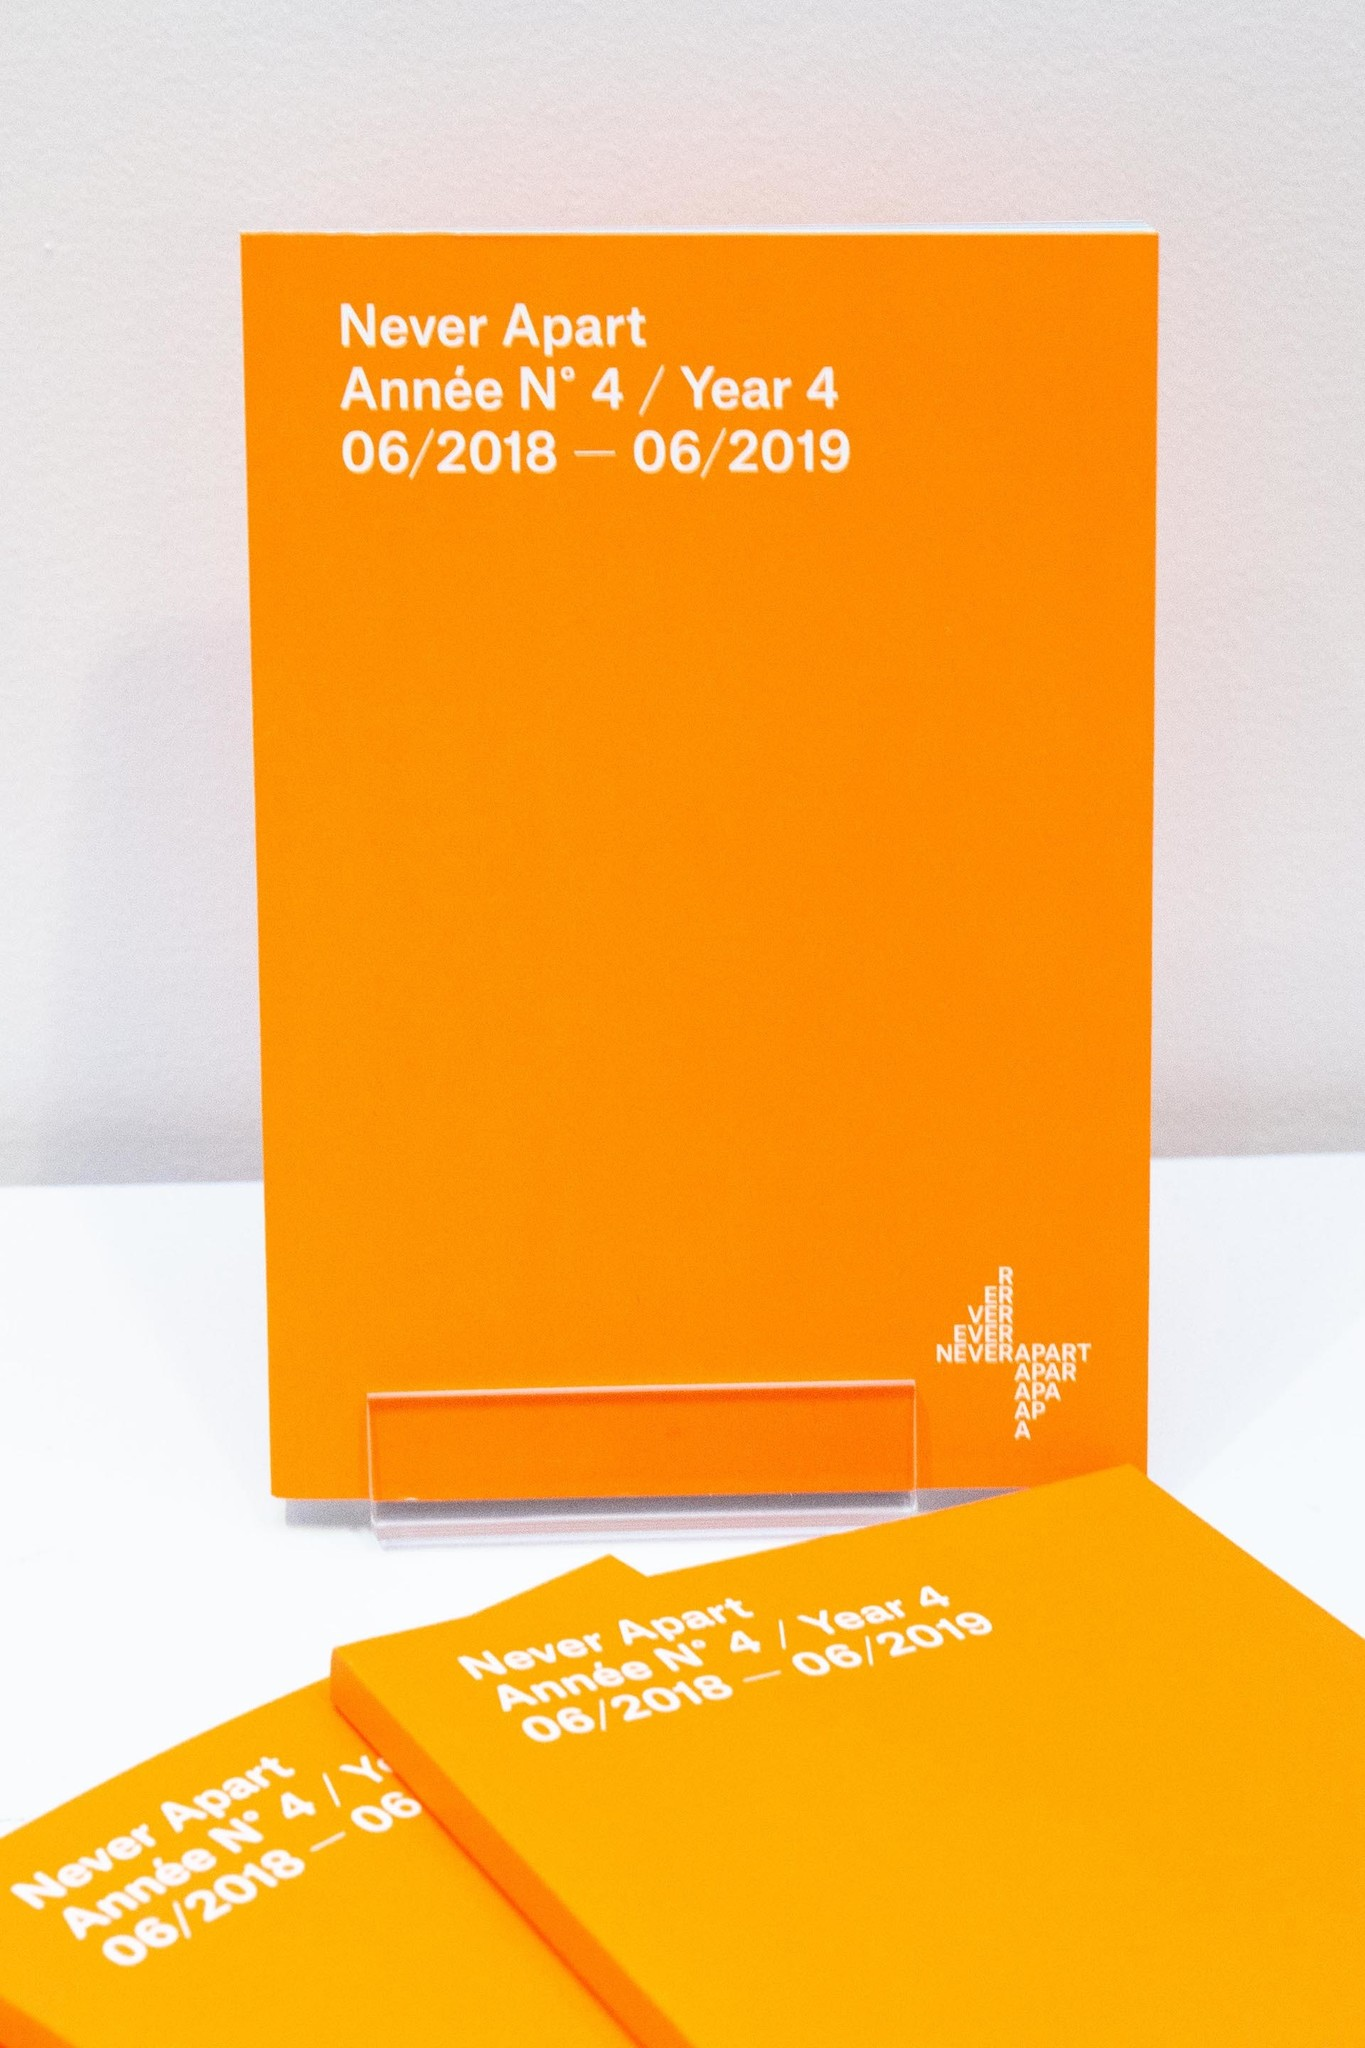 Never Apart Yearbook 4 (2019)